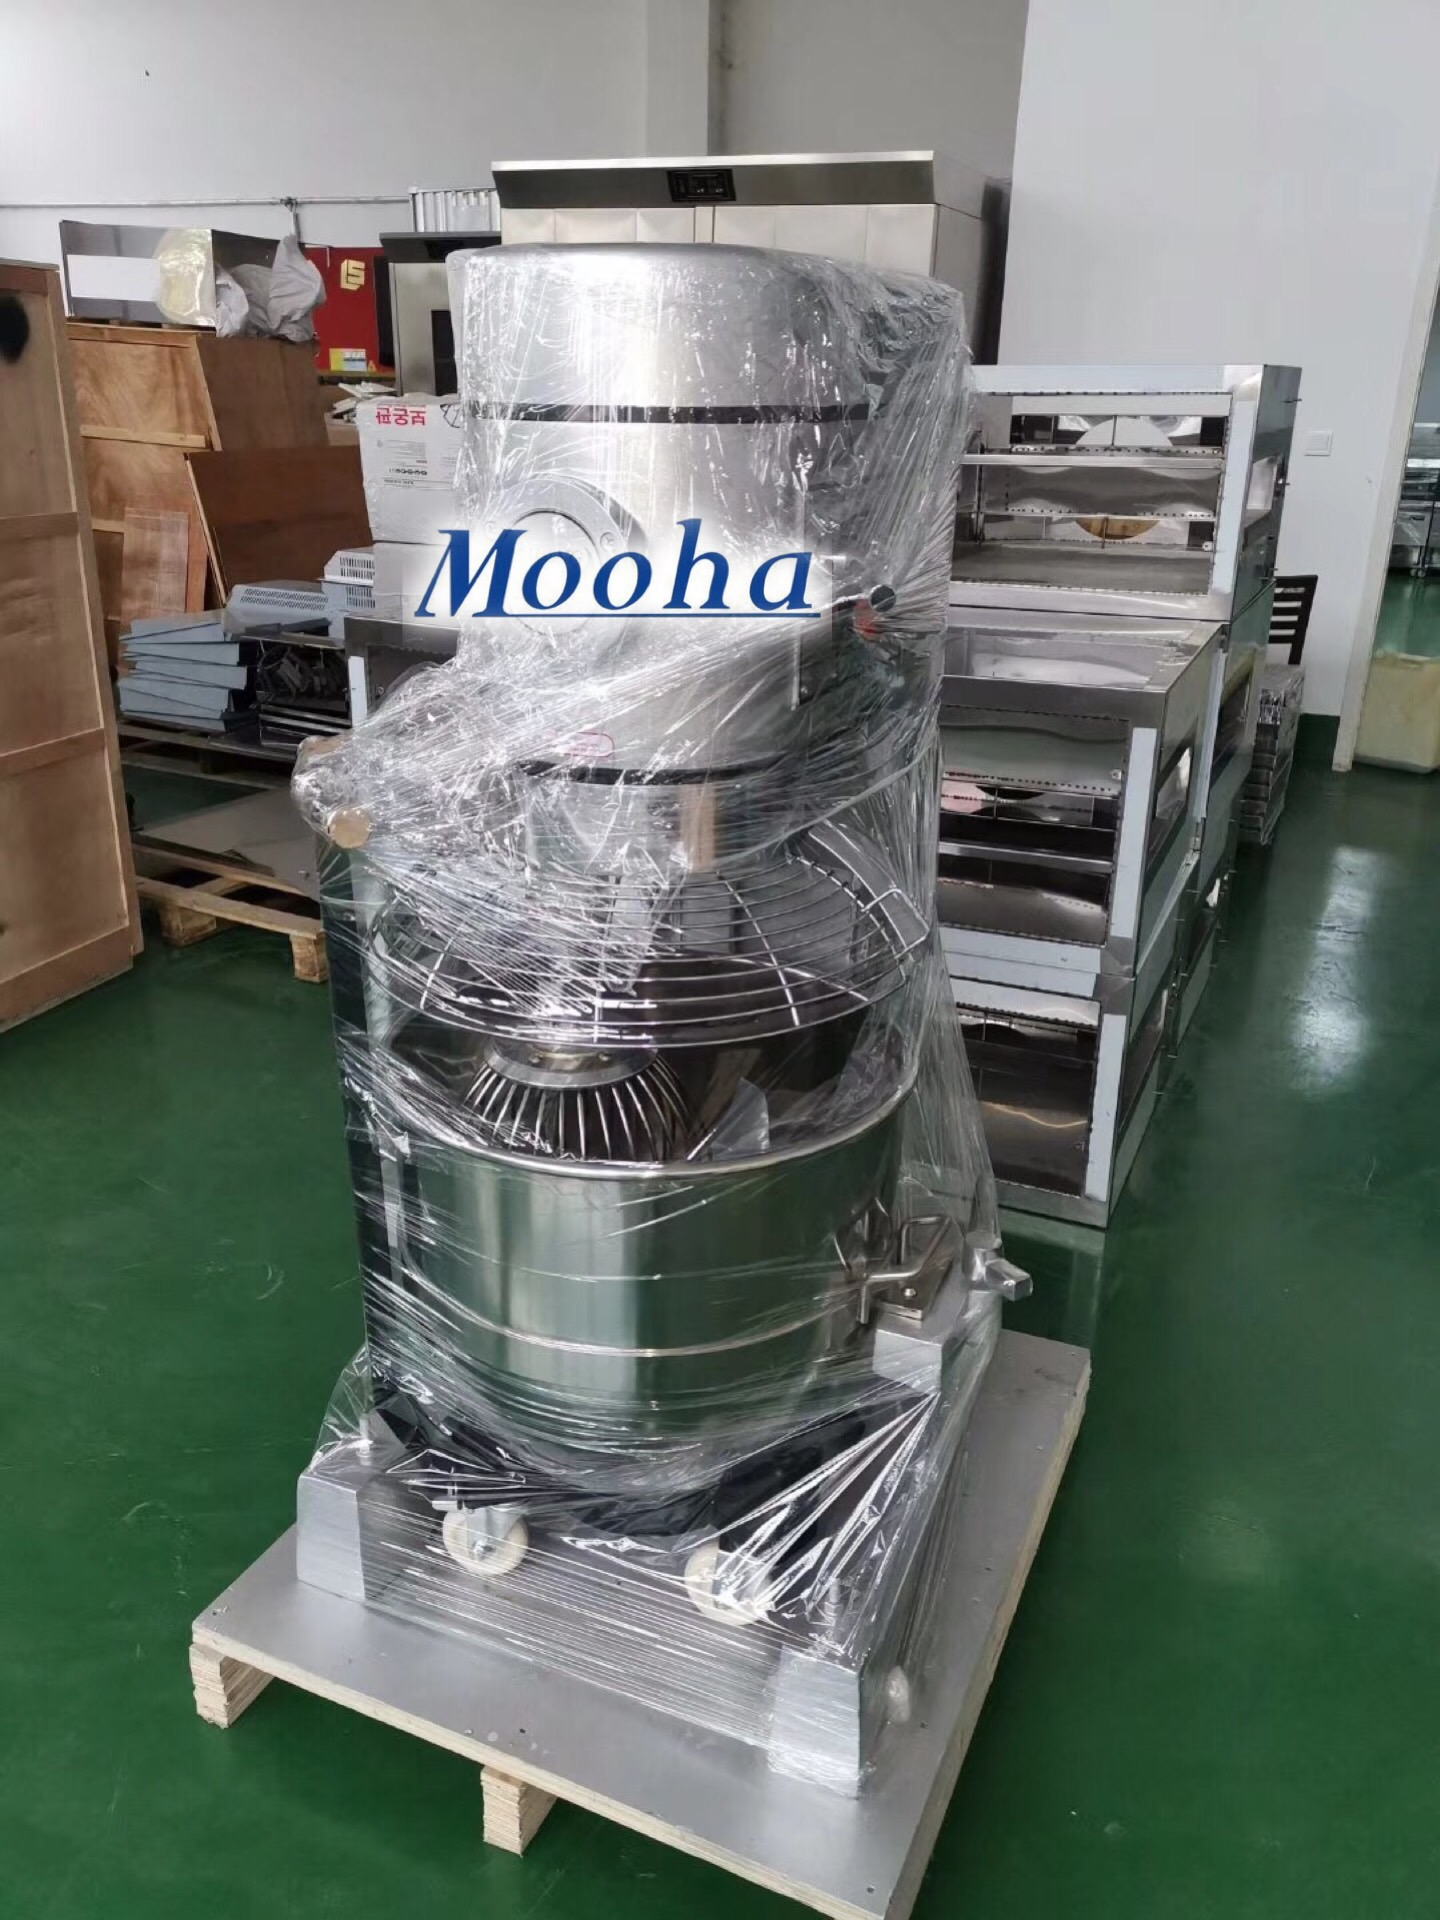 Commercial 60 Liters Planetary Mixer High Quality 8-12 KG powder Kneading Cake Biscuits Cookies Cream Egg Butter Dough Mixing Bakery Machine